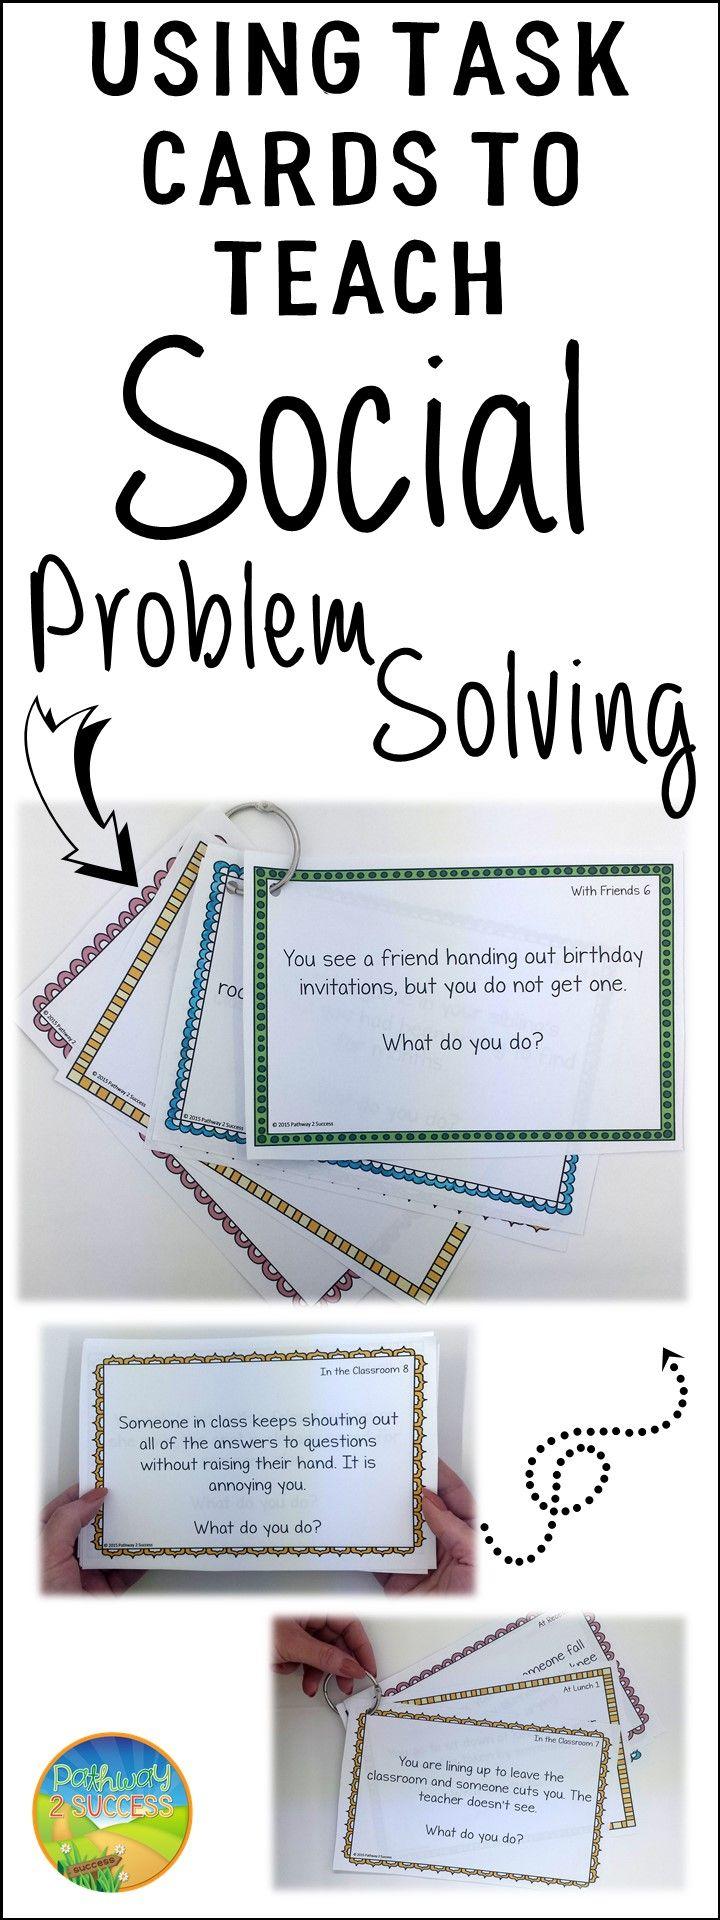 17 best ideas about problem solving mindfulness for strategies and tips for using task cards to teach social problem solving skills